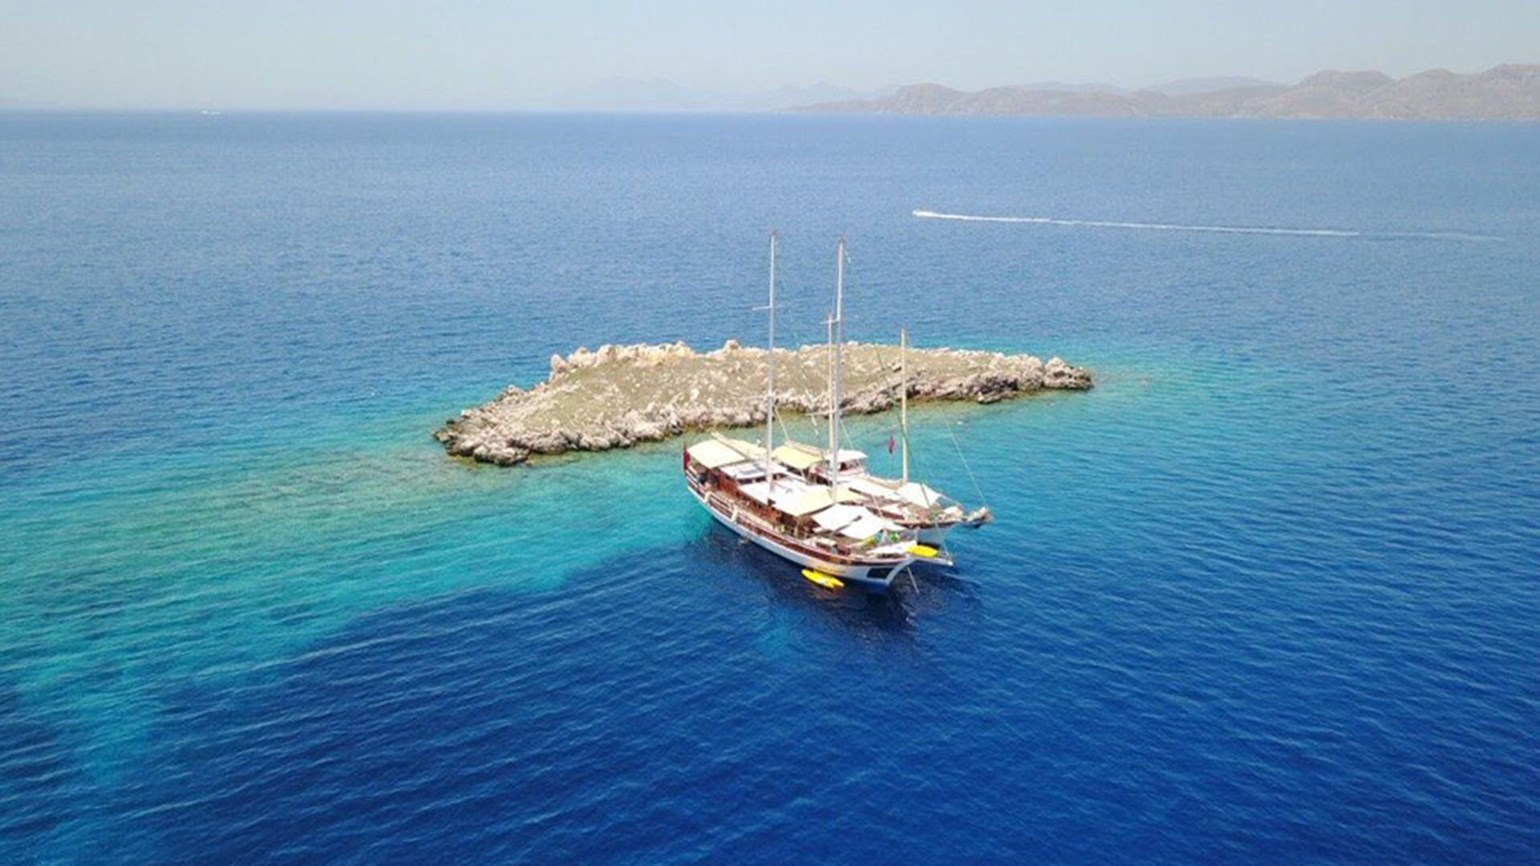 Turkey and Greece yacht cruise, $575